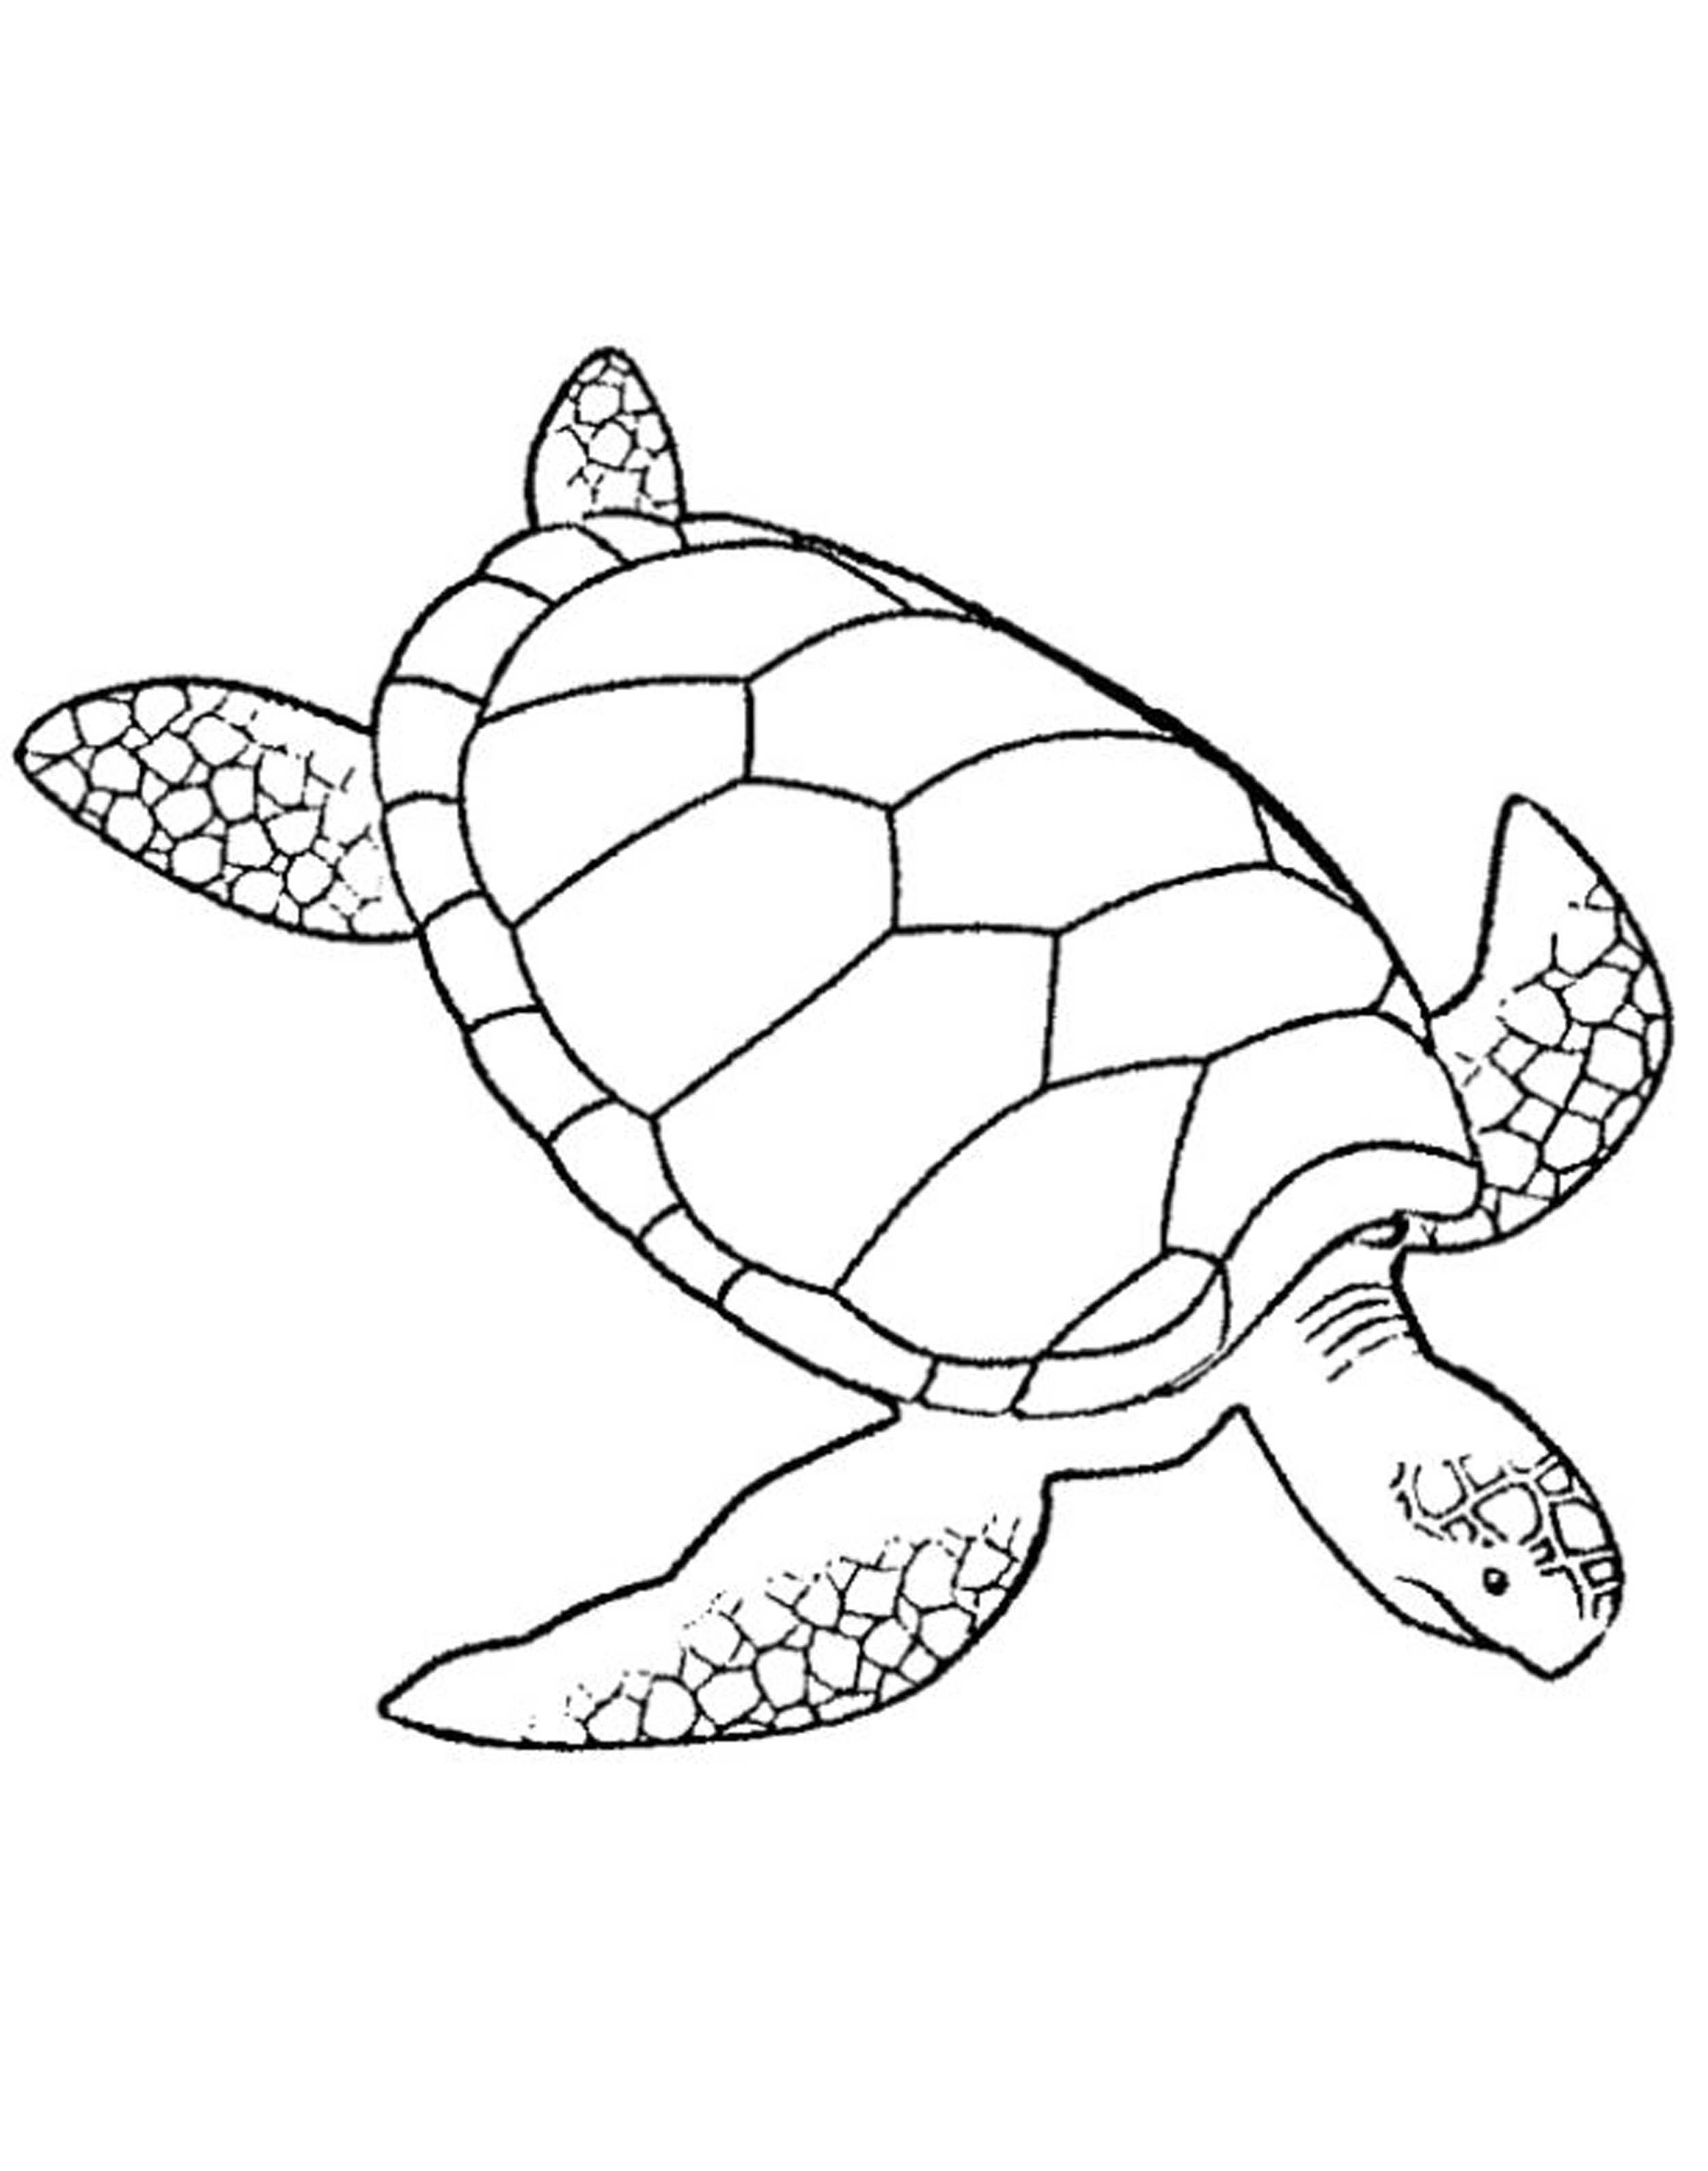 sea turtle coloring pages printable fantastic sea turtle coloring pages printable printable coloring pages sea turtle